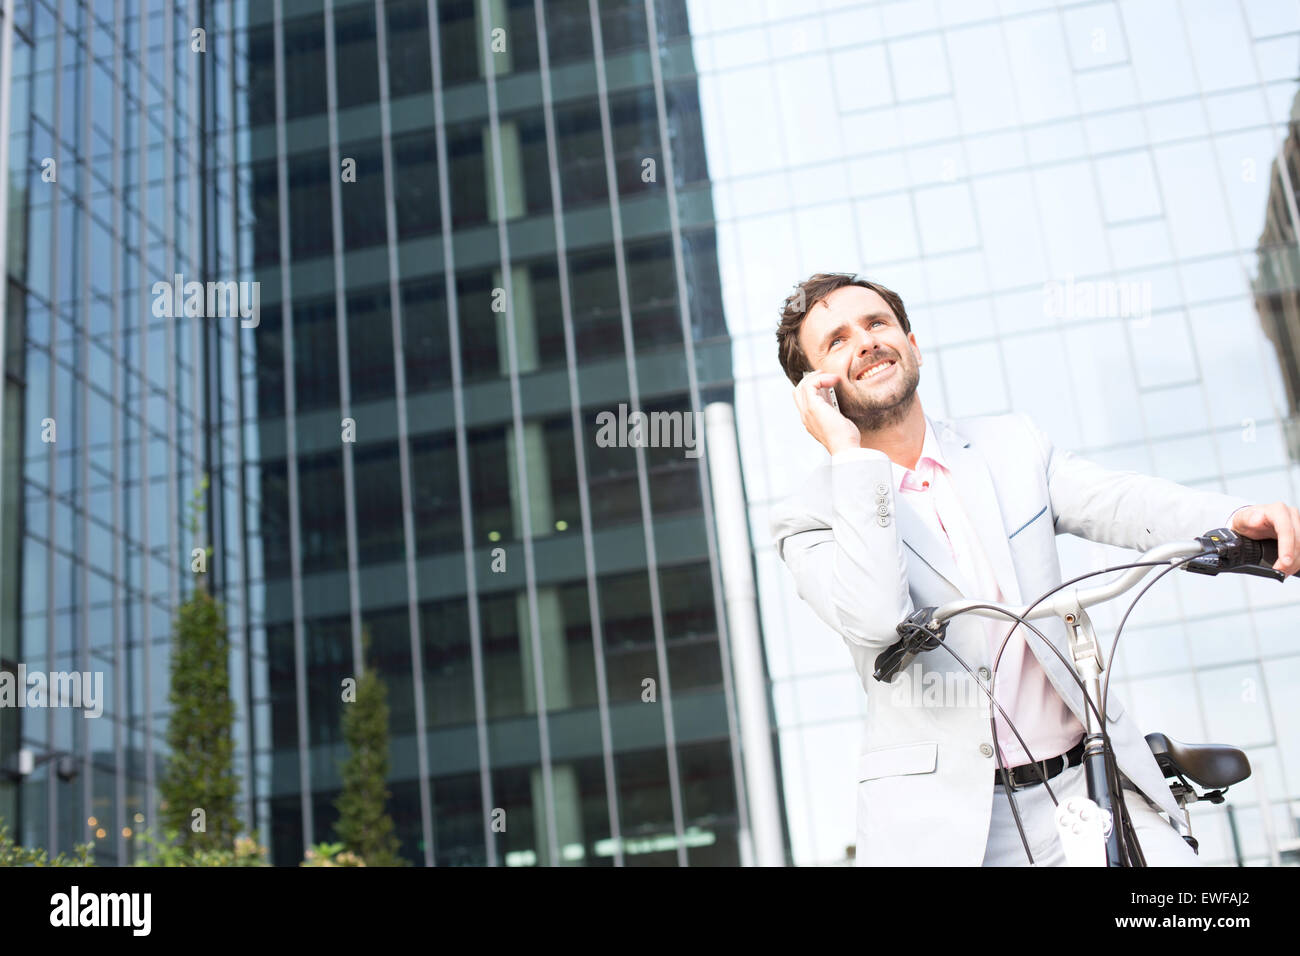 Low angle view of businessman answering mobile phone while sitting on bicycle outdoors - Stock Image